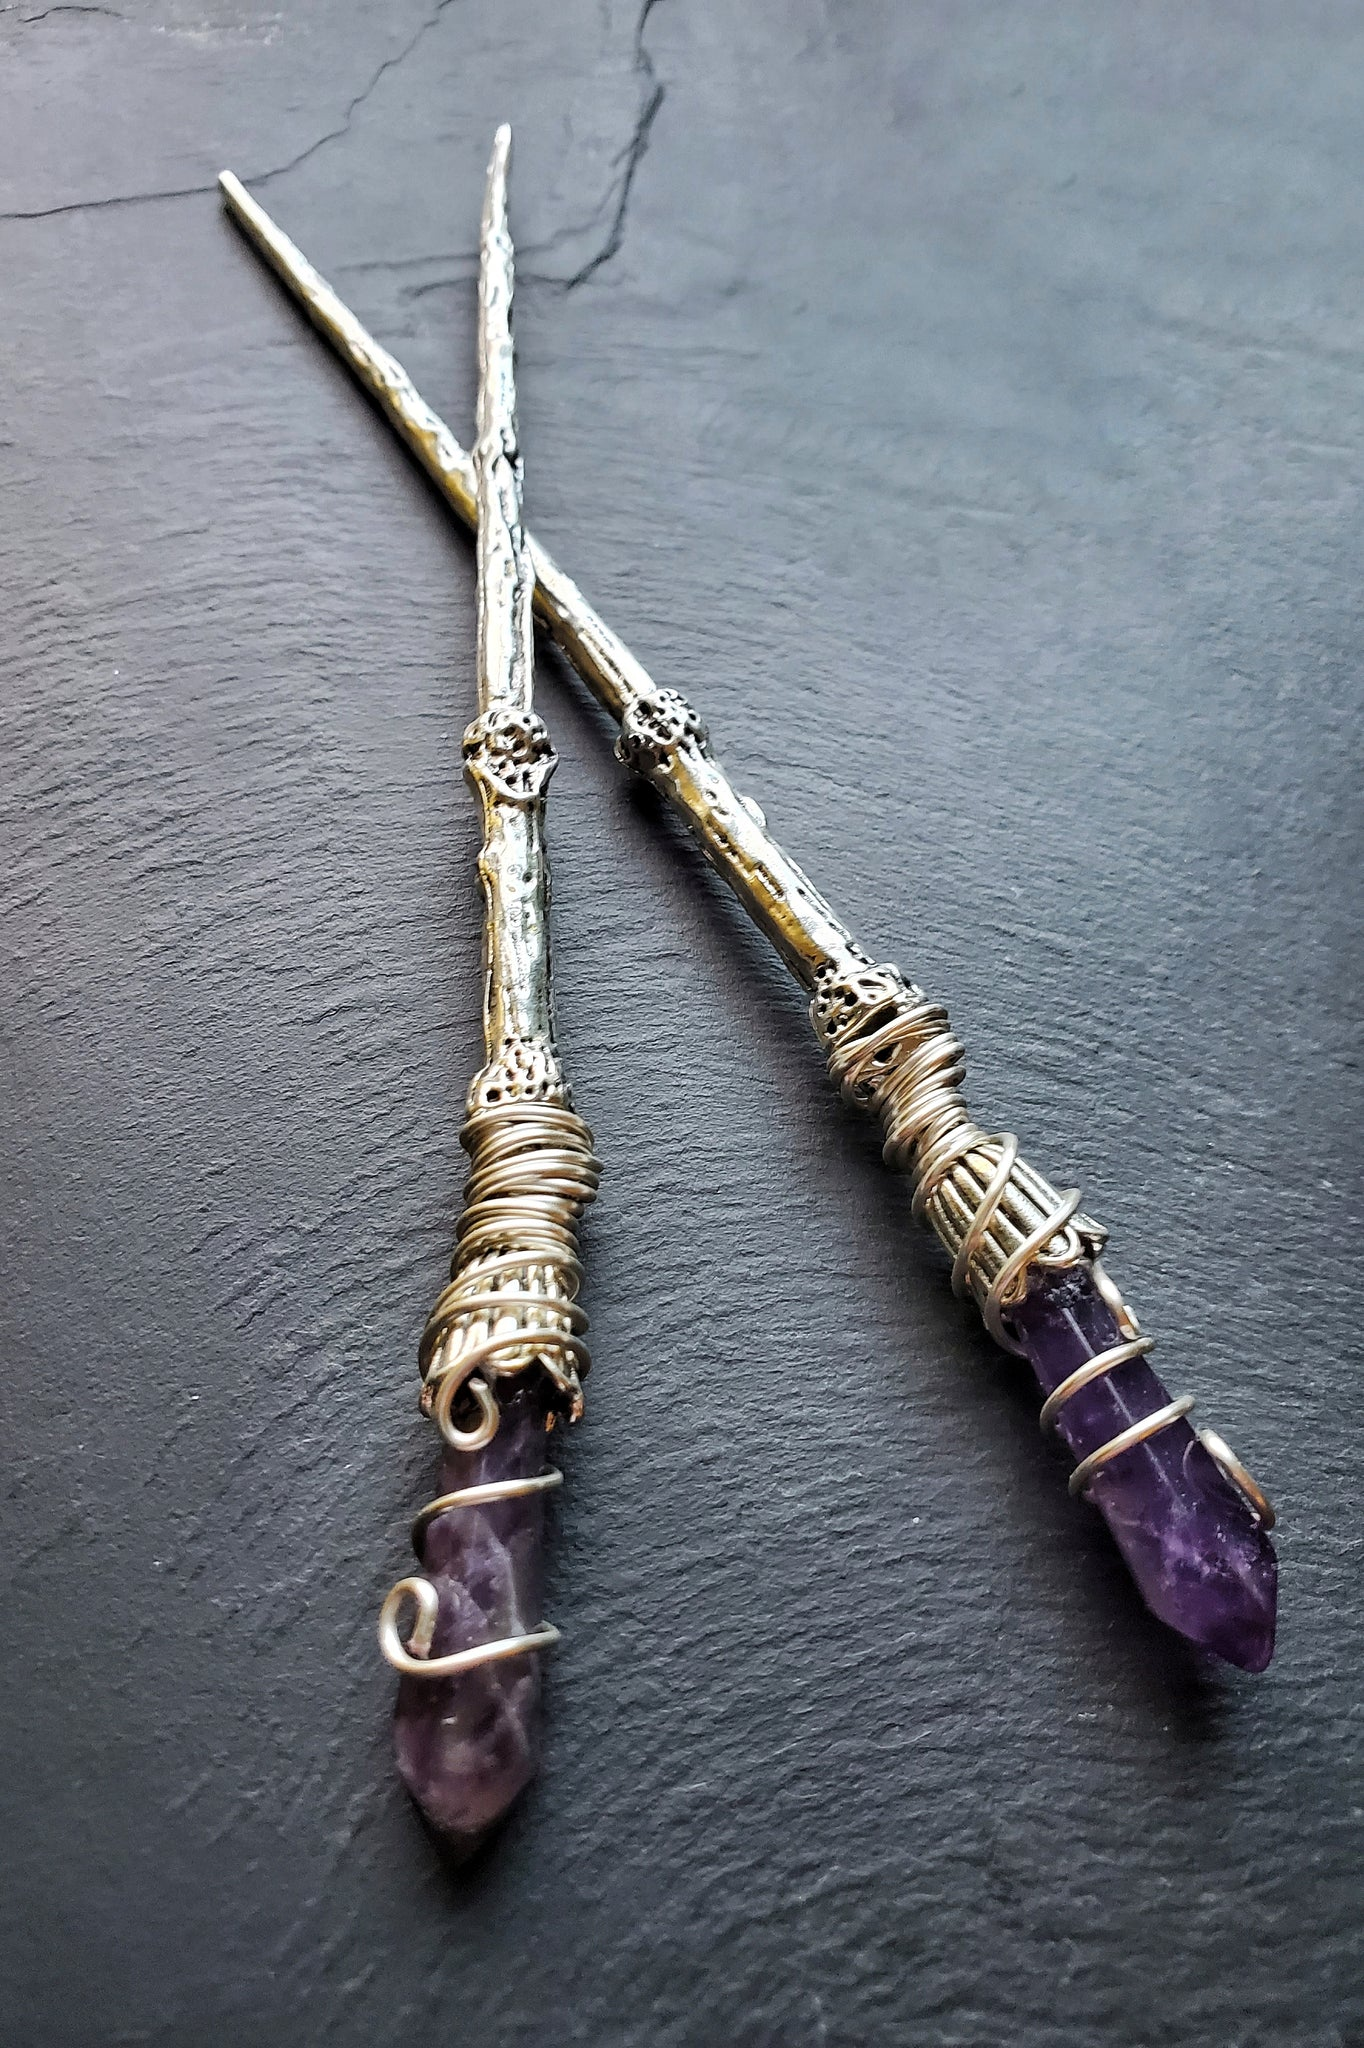 Witch Sticks Hair Stick Magic Wand for Witches